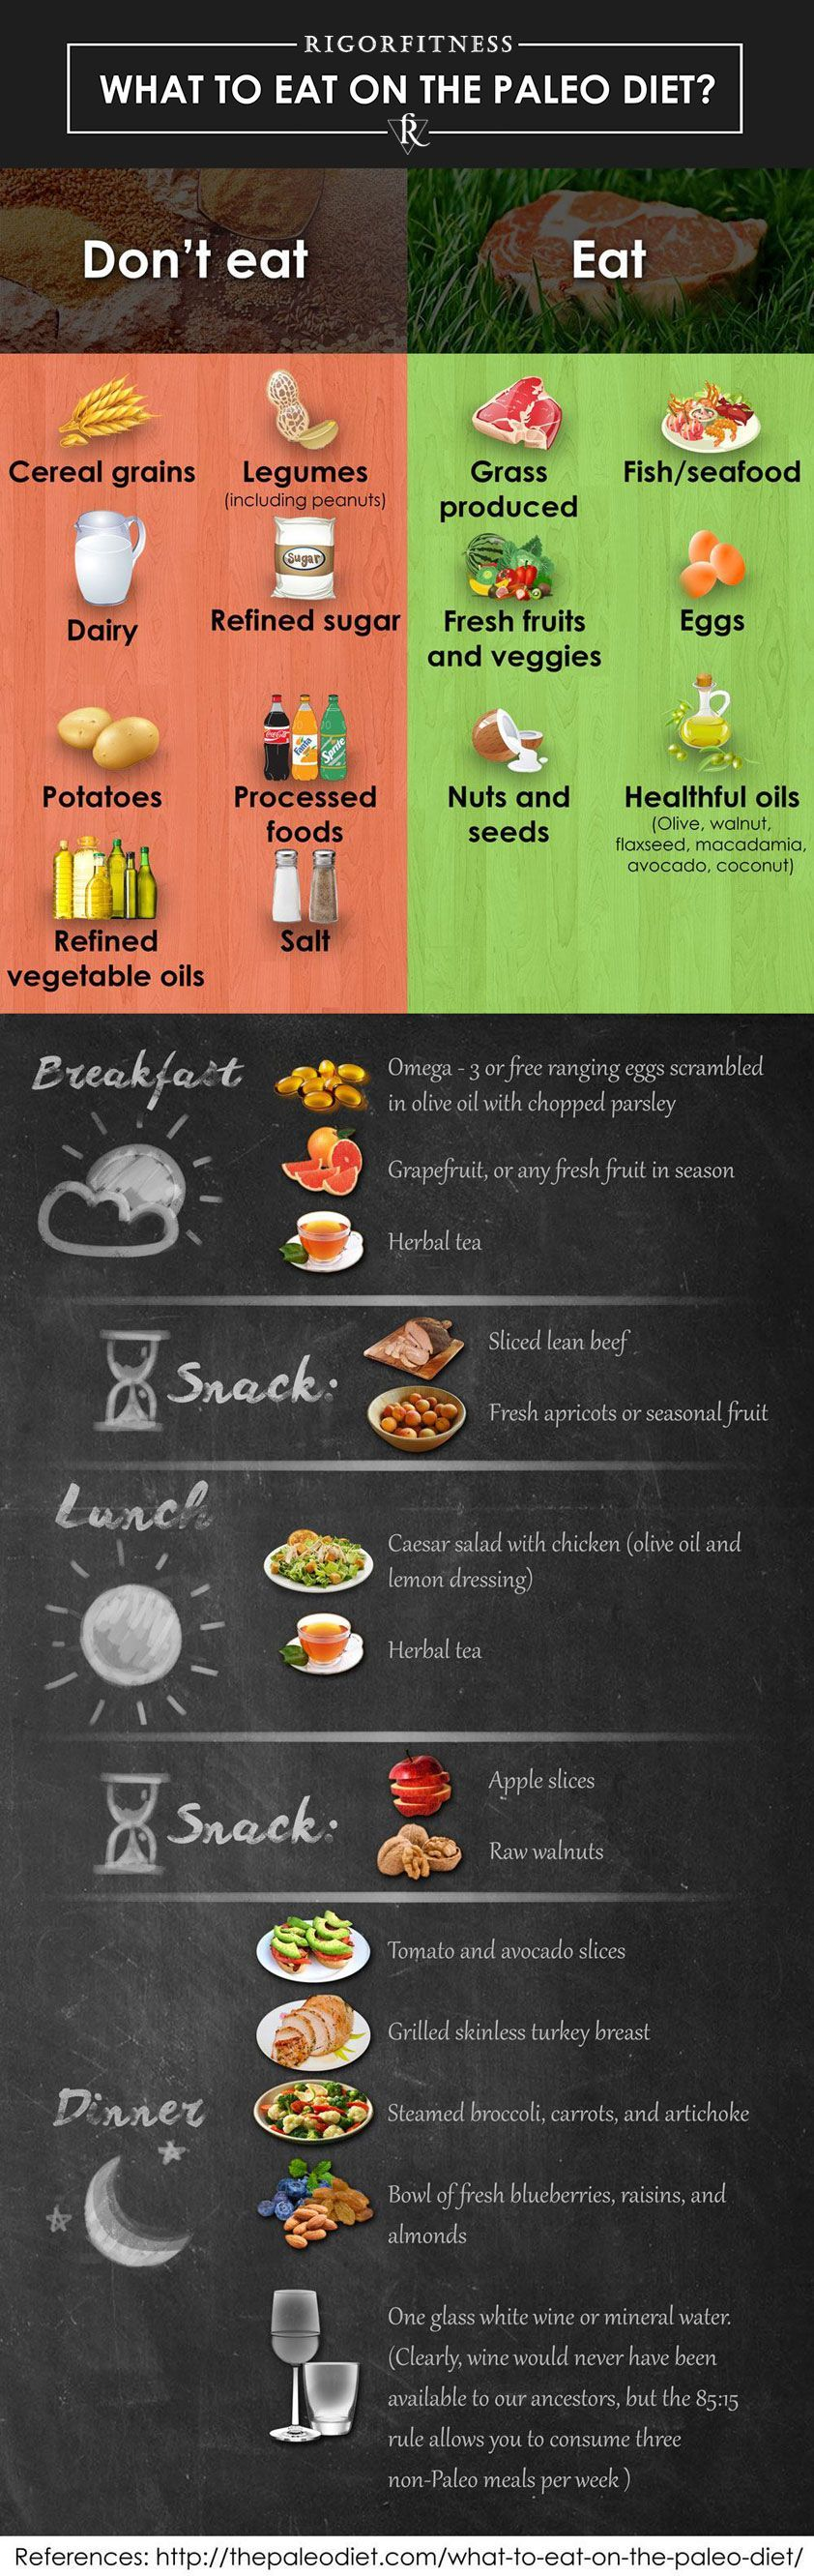 What-to-eat-on-the-Paleo-Diet-Infographic.jpg